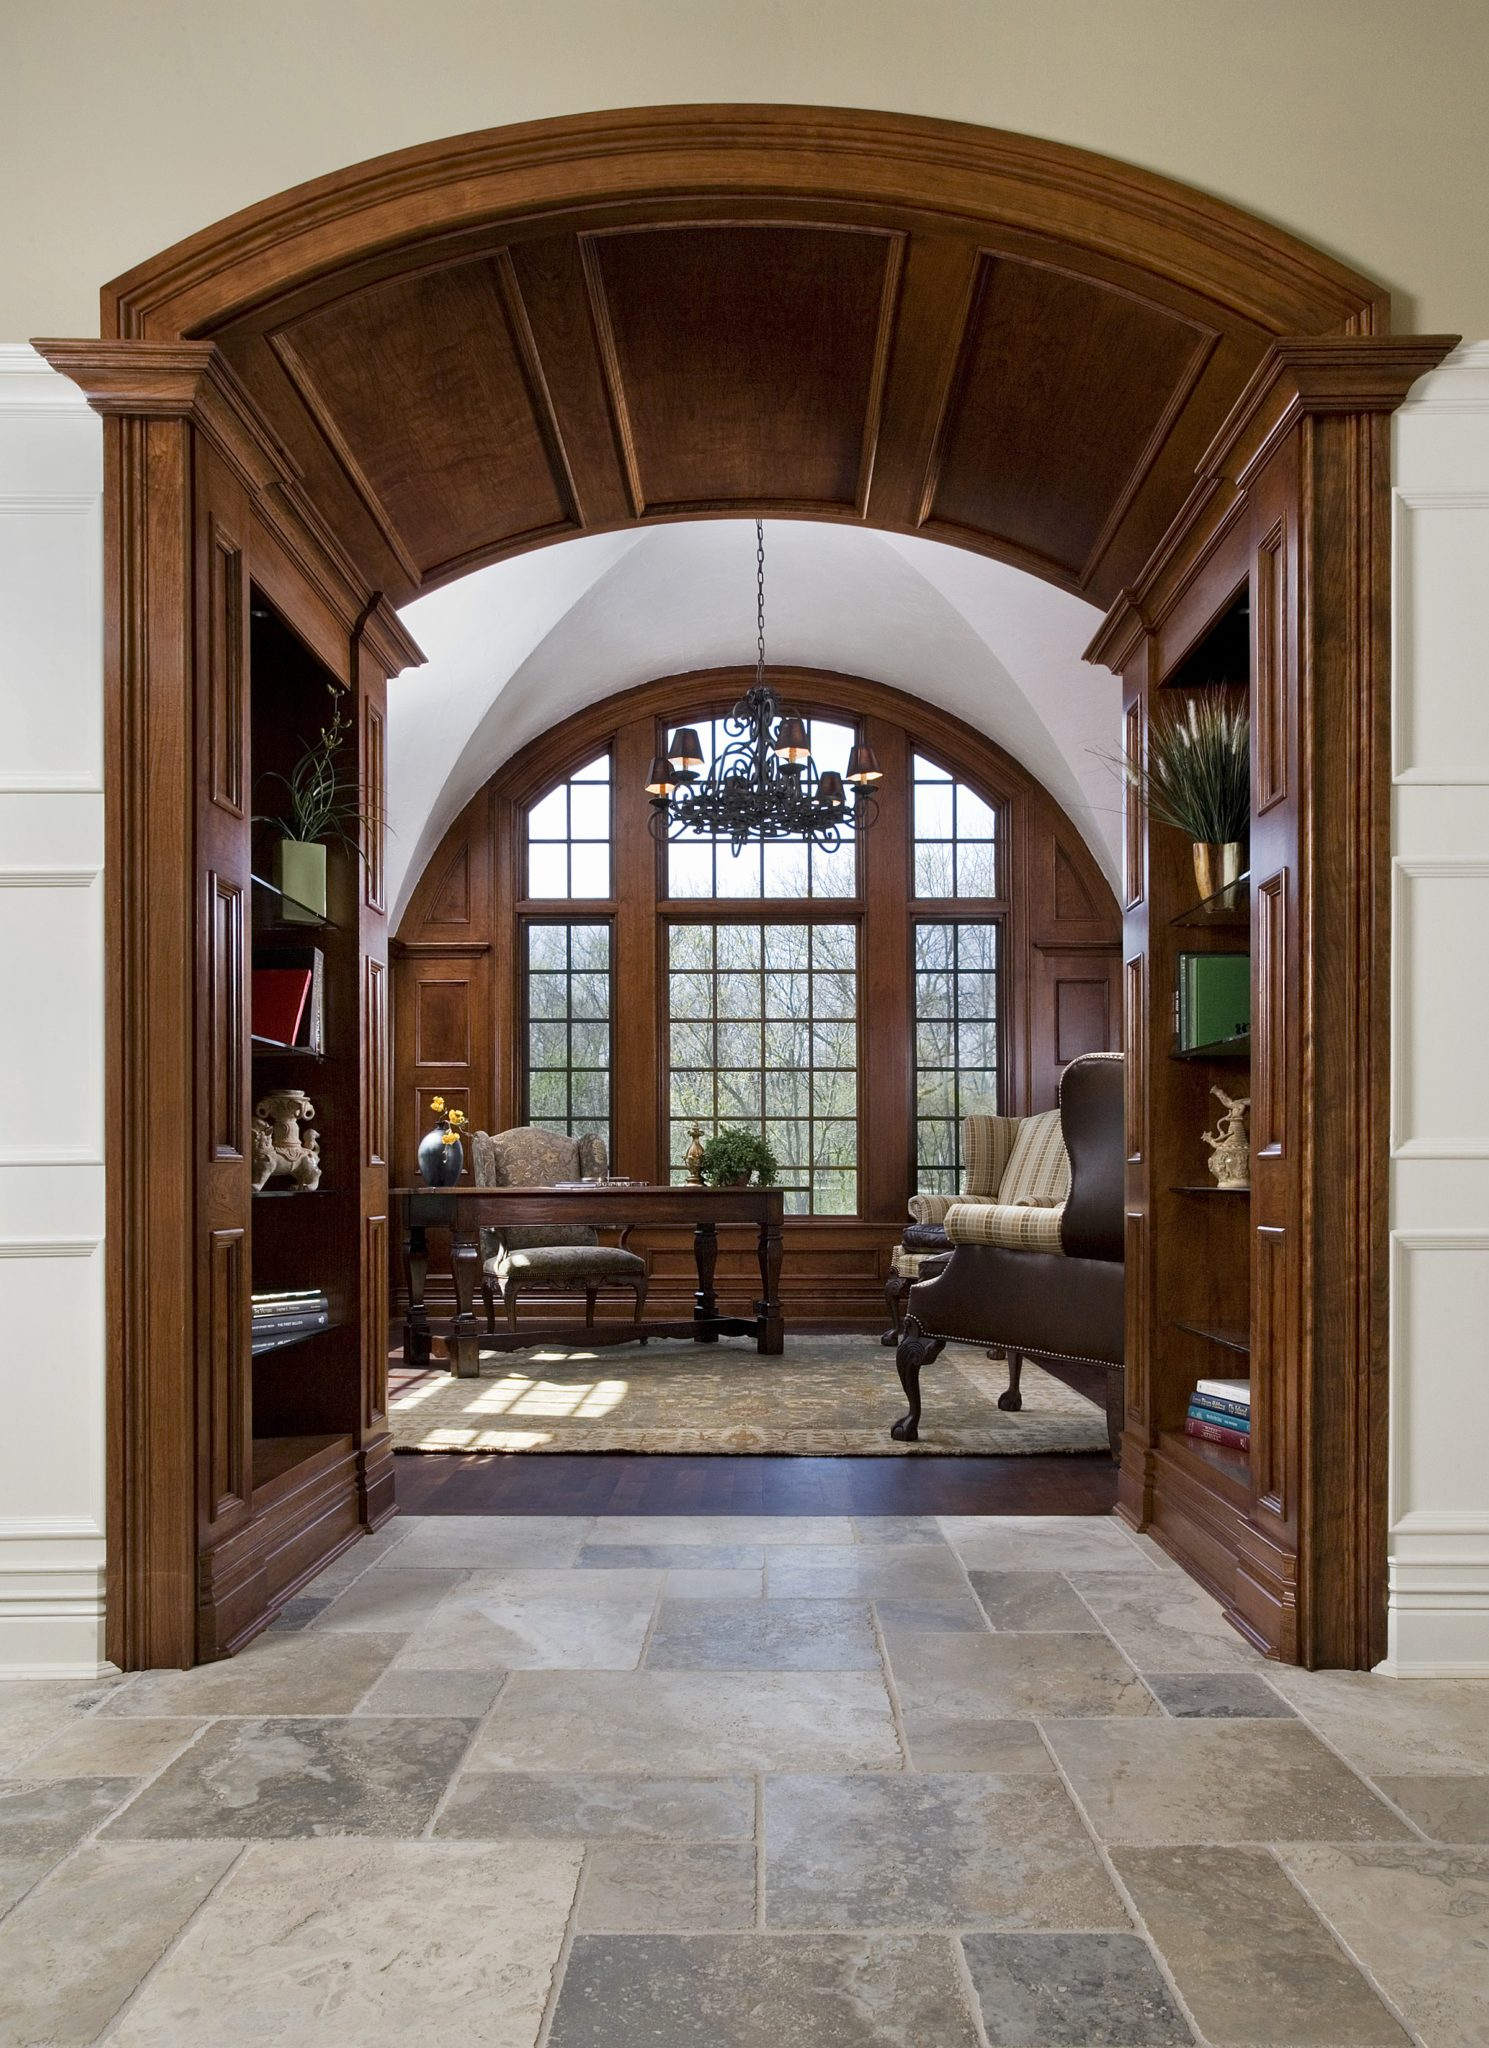 Arched entry with flanking bookshelves lead to paneled library by Orren Pickell Building Group